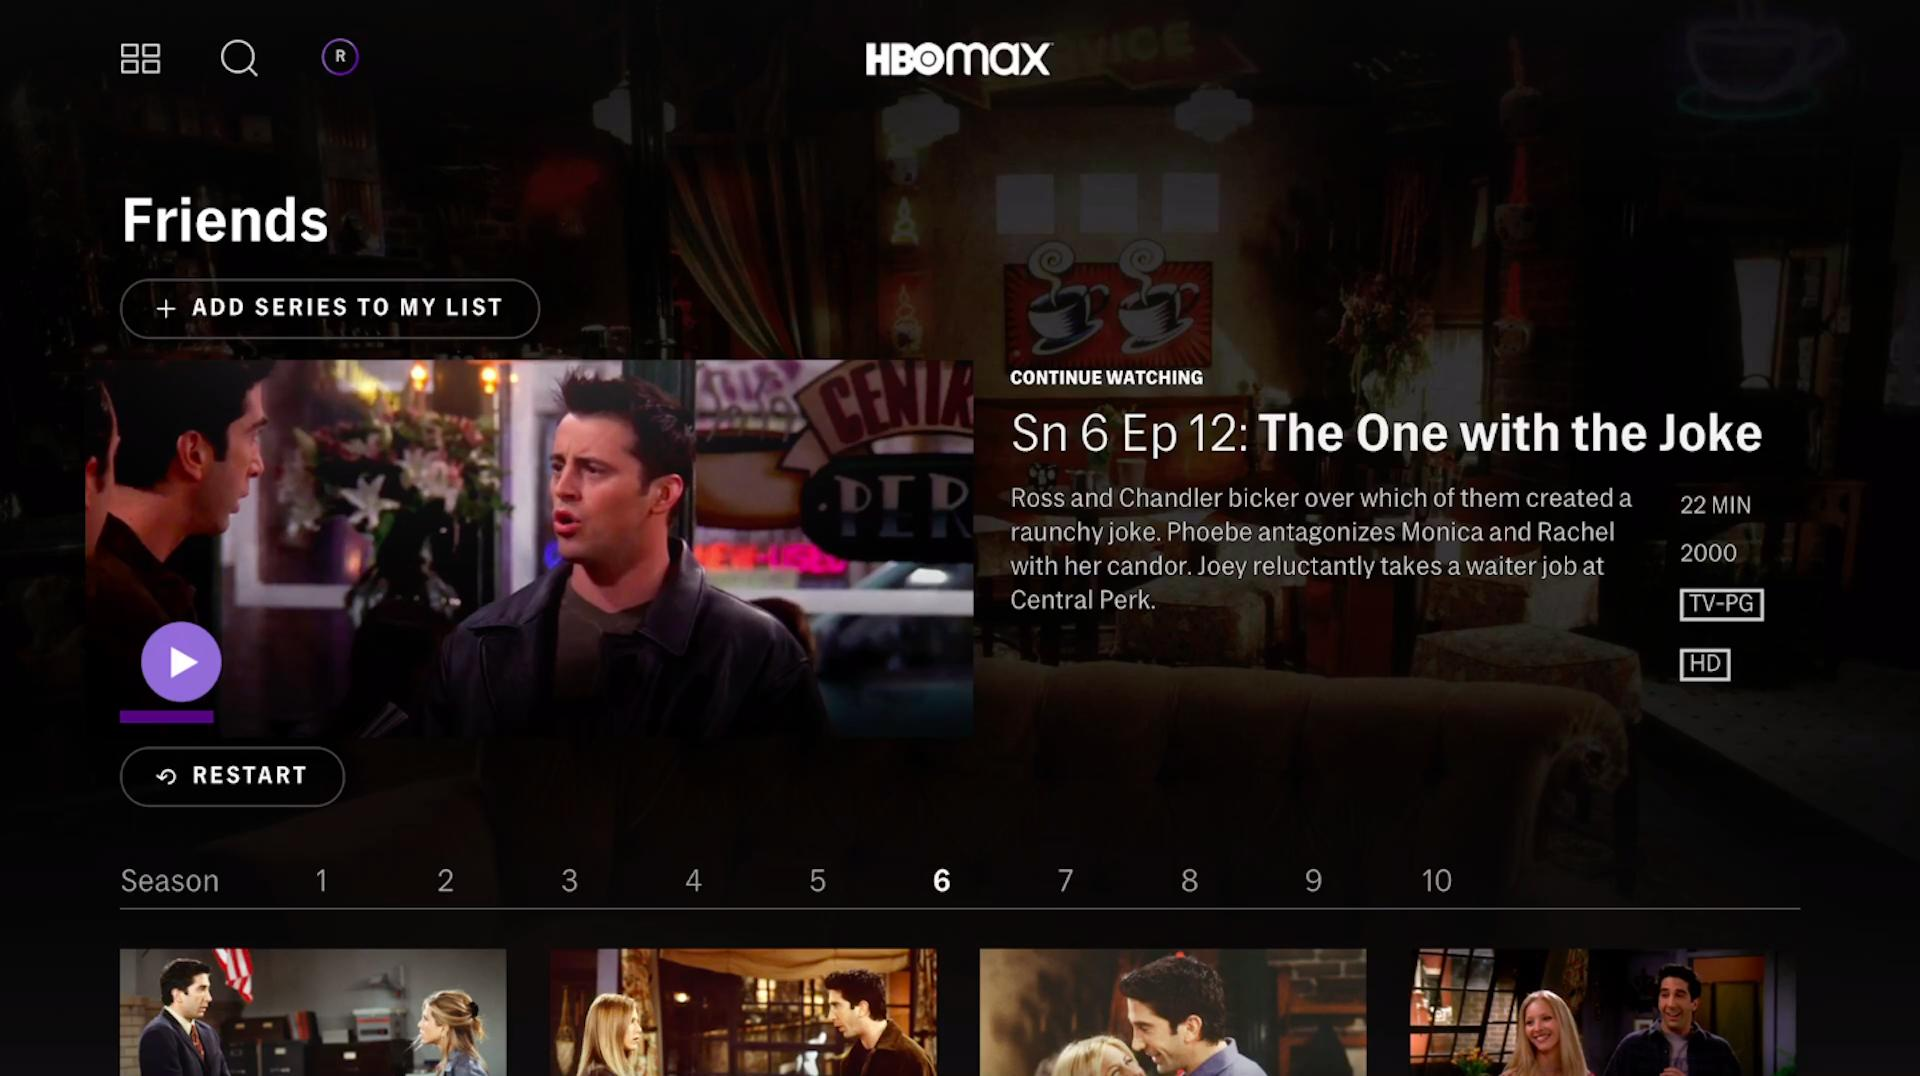 HBO Max is finally available on Amazon Fire TV devices